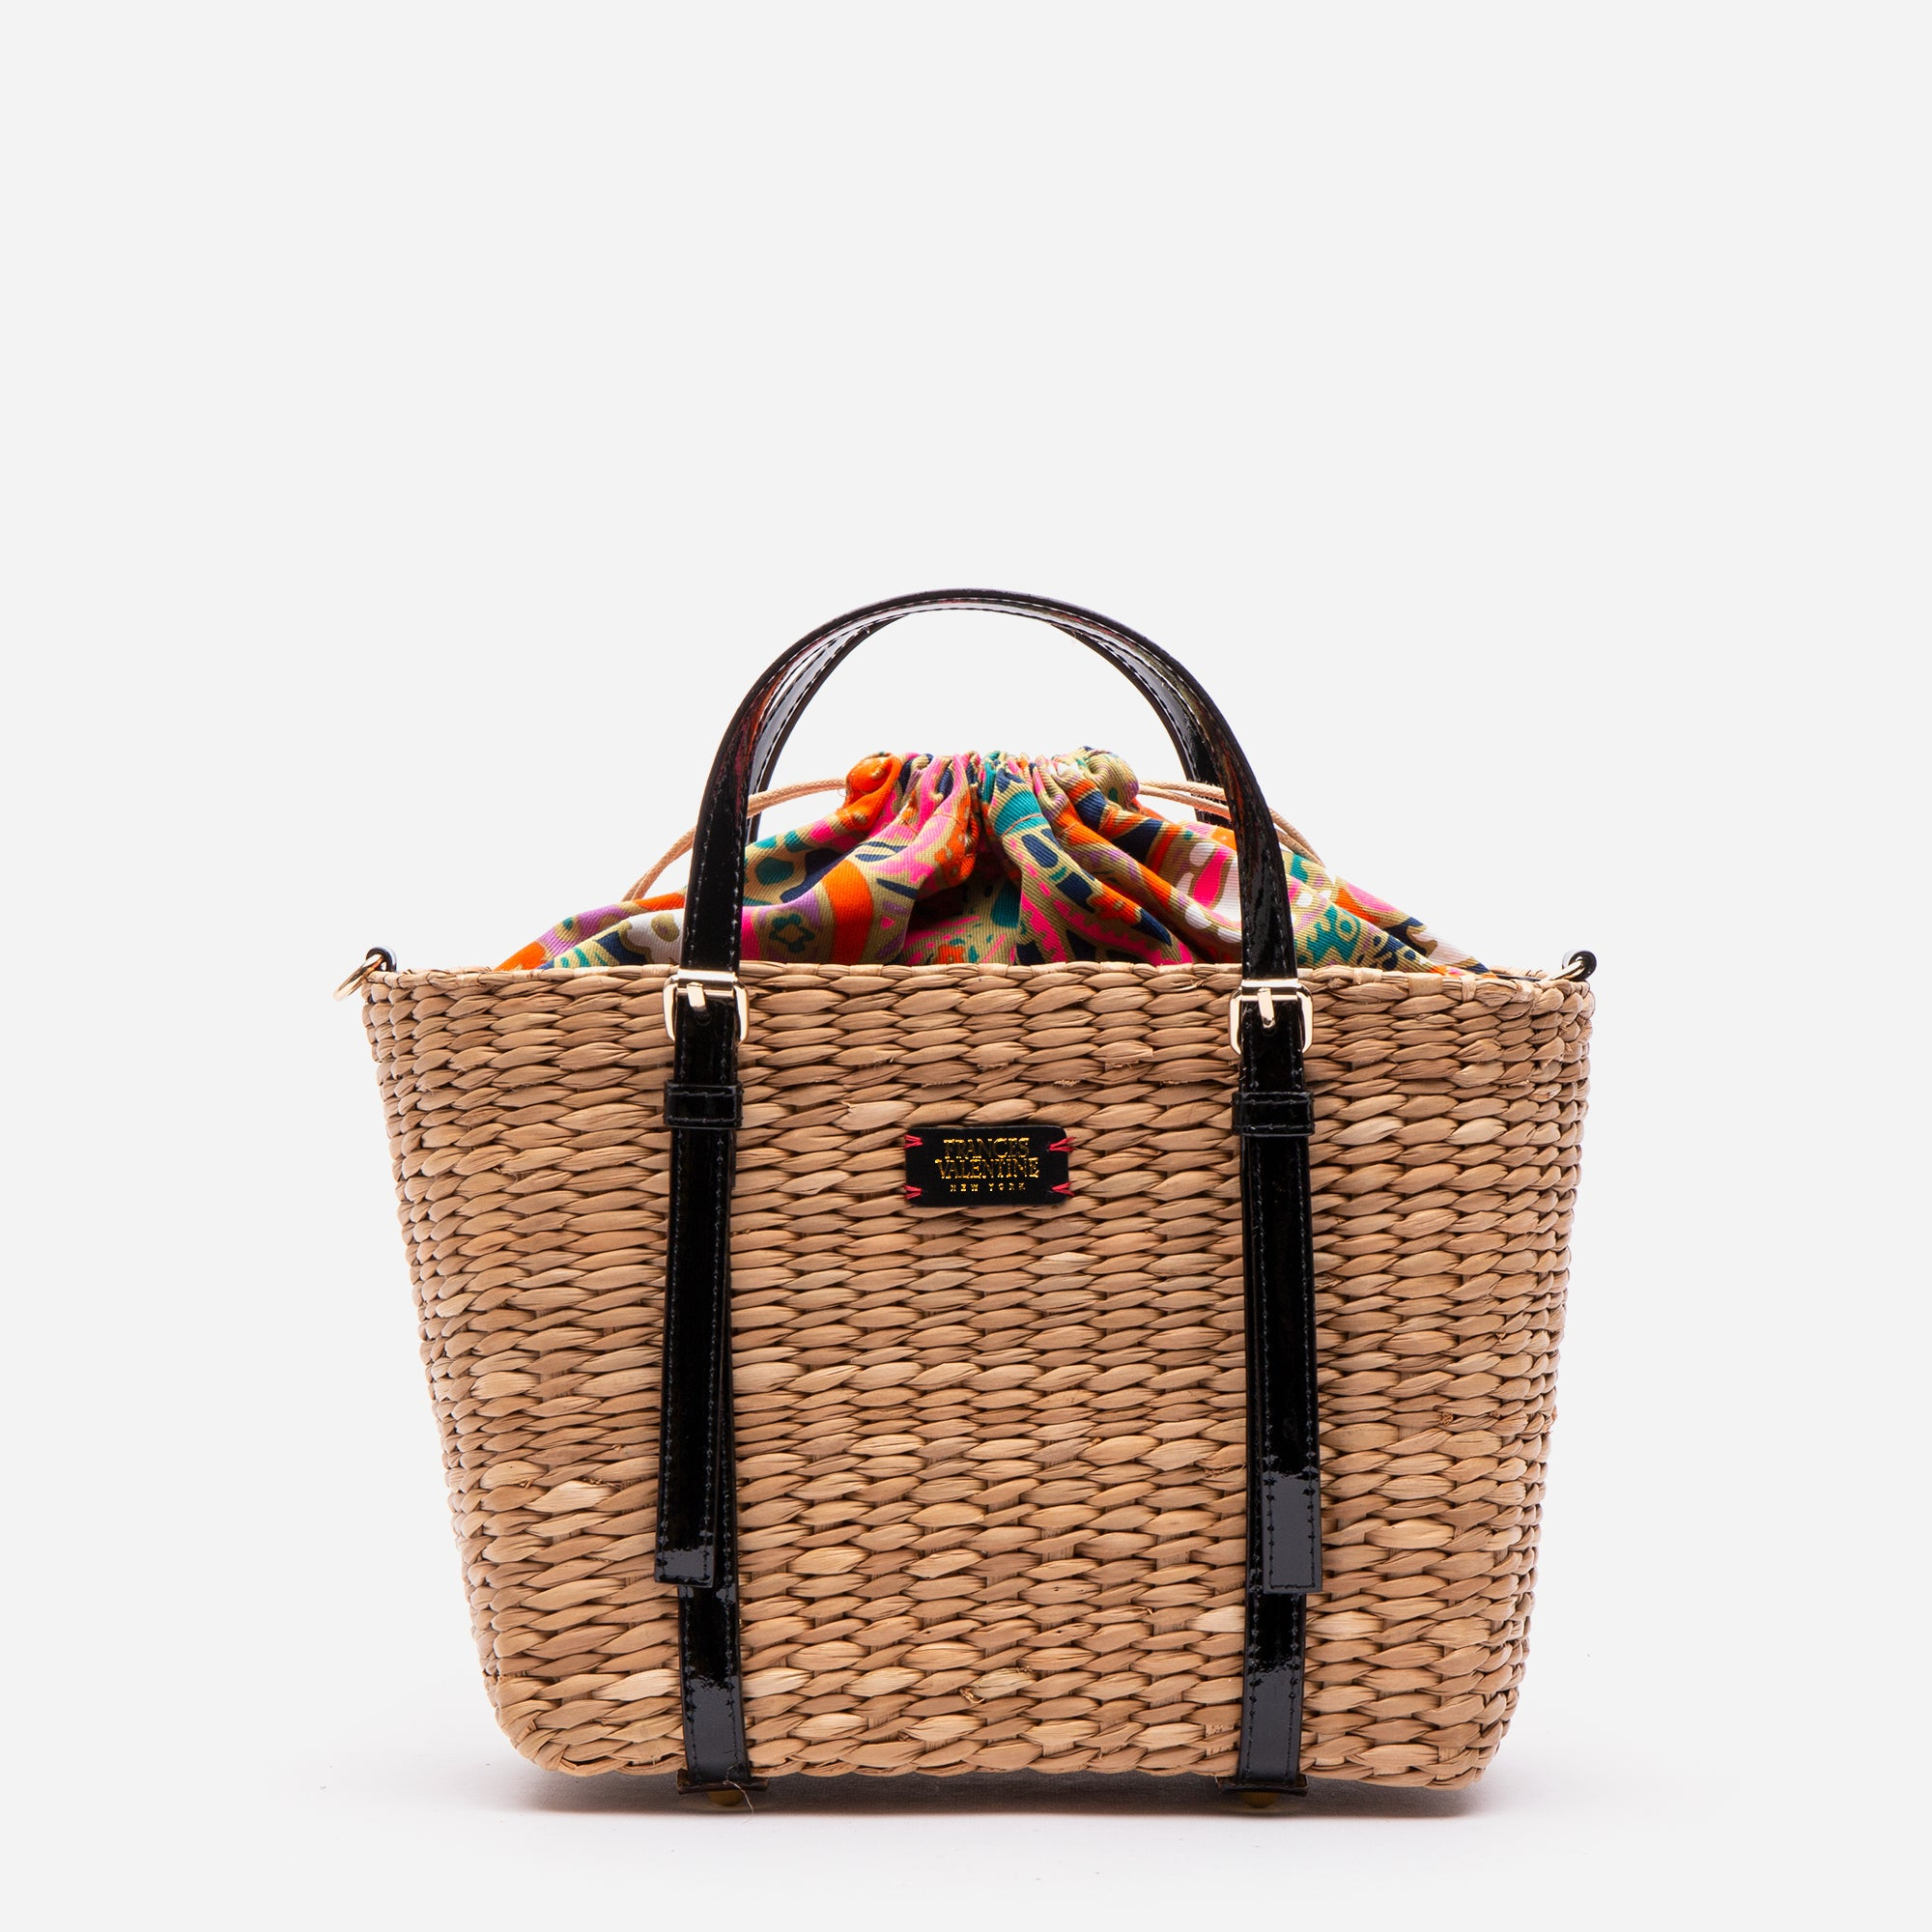 Small Woven Basket Tote Patent Black